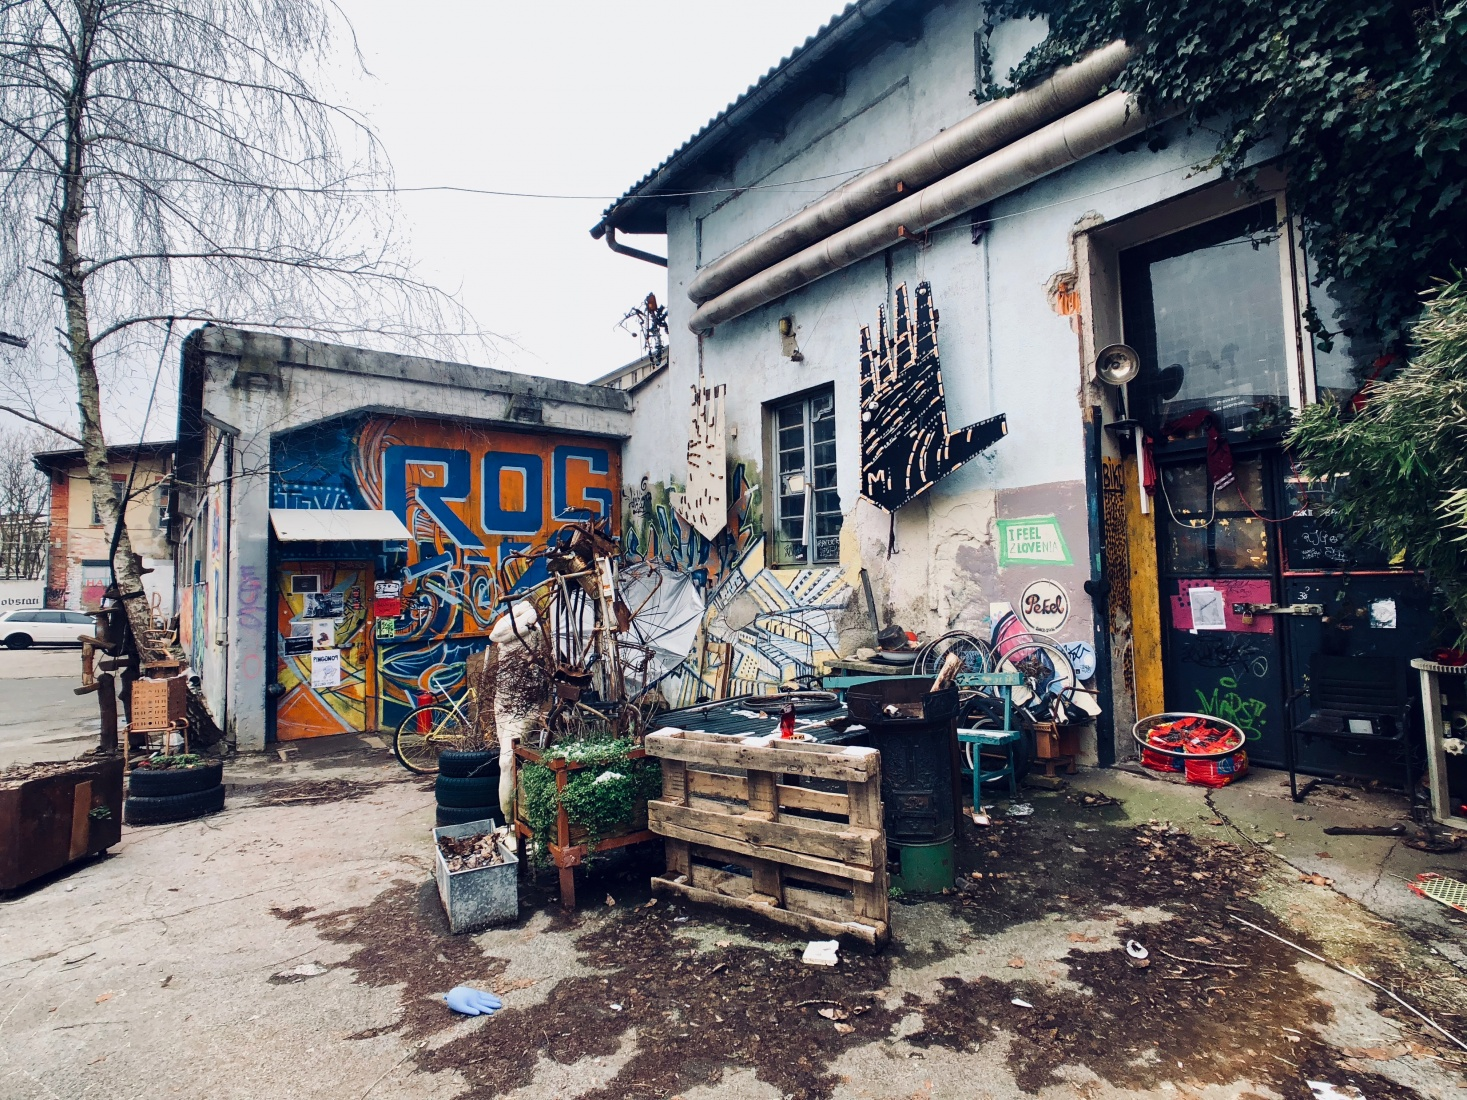 Graffiti-covered walls, statues, and art pieces at Rog squat, Metelkova Mesto squat's younger counterpart in a former bicycle factory, in Ljubljana, Slovenia.